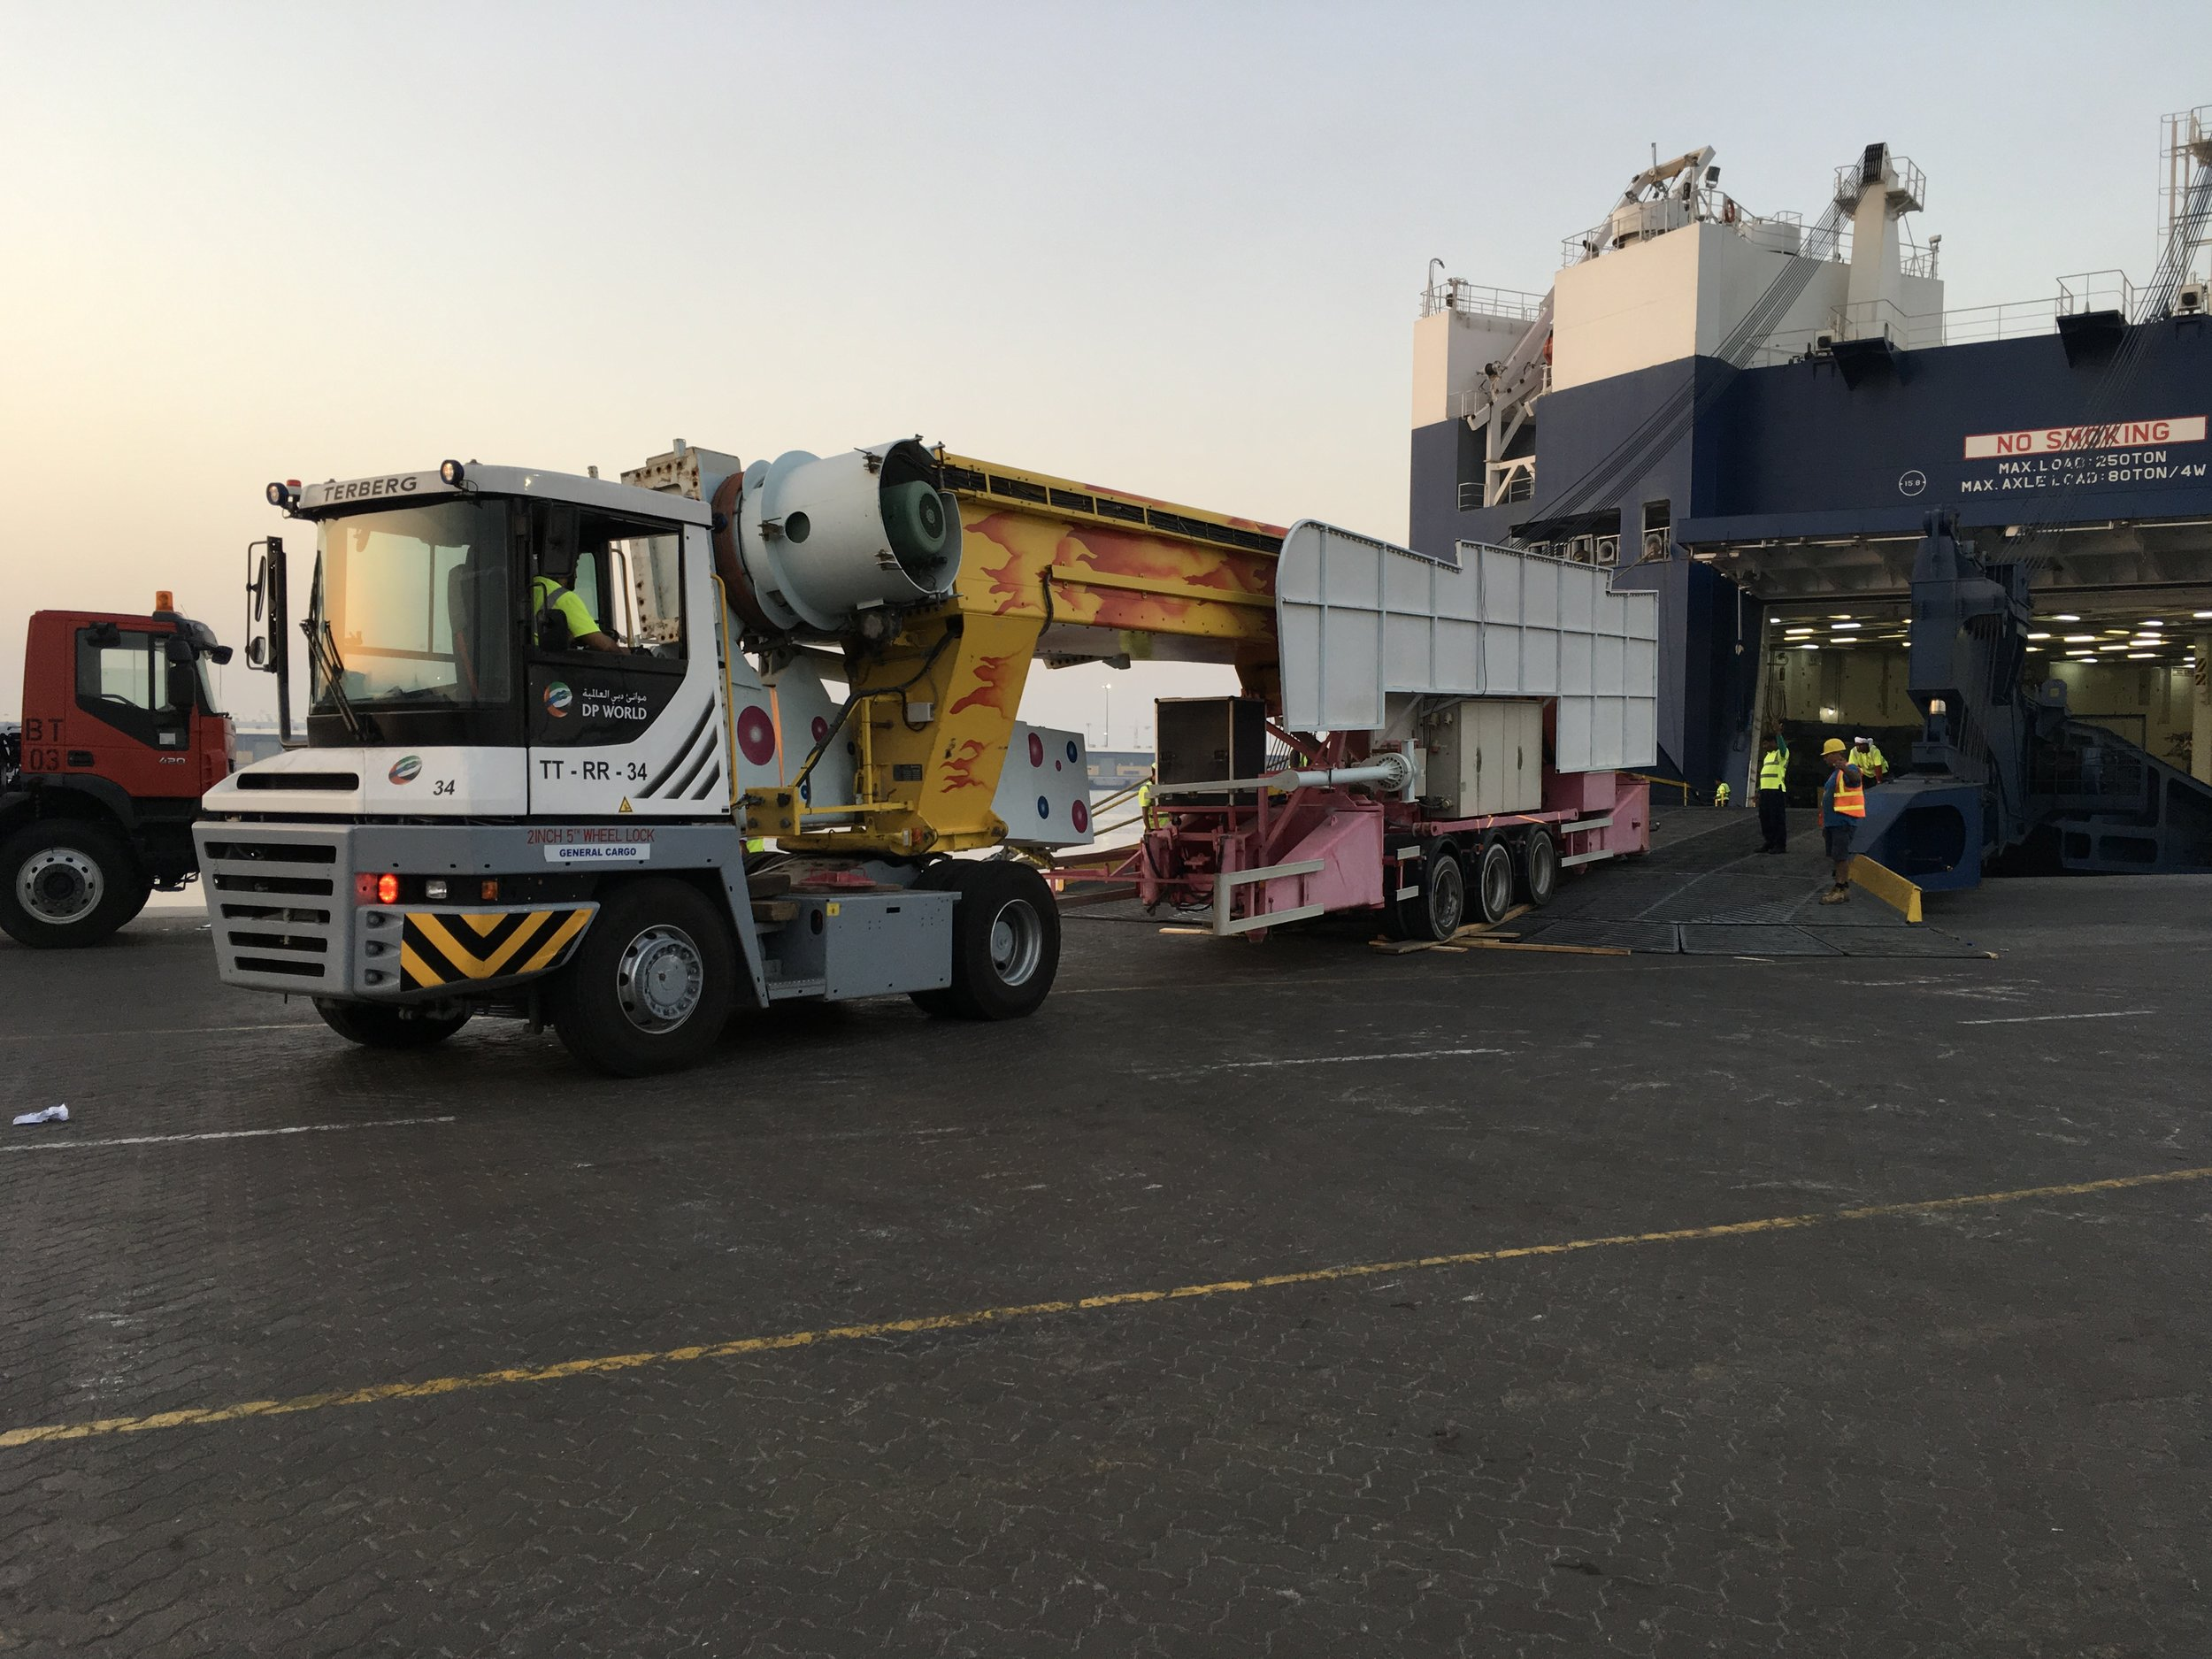 Supervising loading - We are always available to supervise loads - anywhere in the world